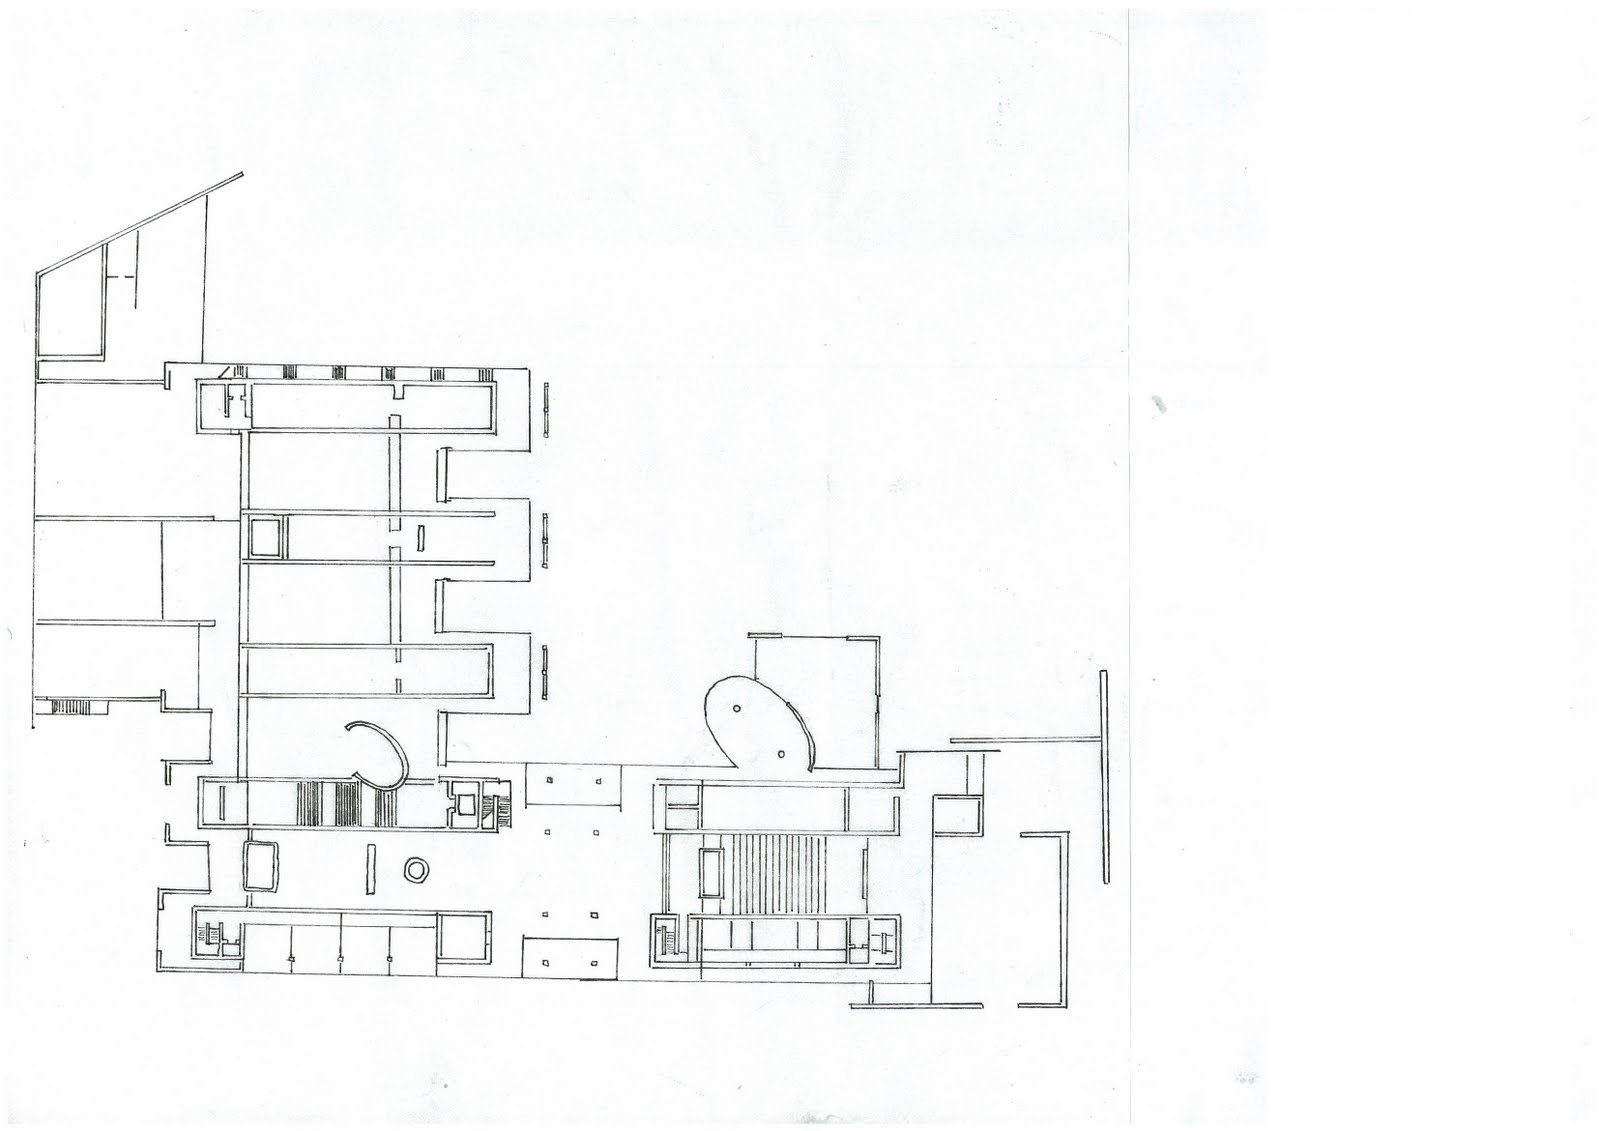 Floor Plan Elevation Section Perspective : Tadao ando floor plans house